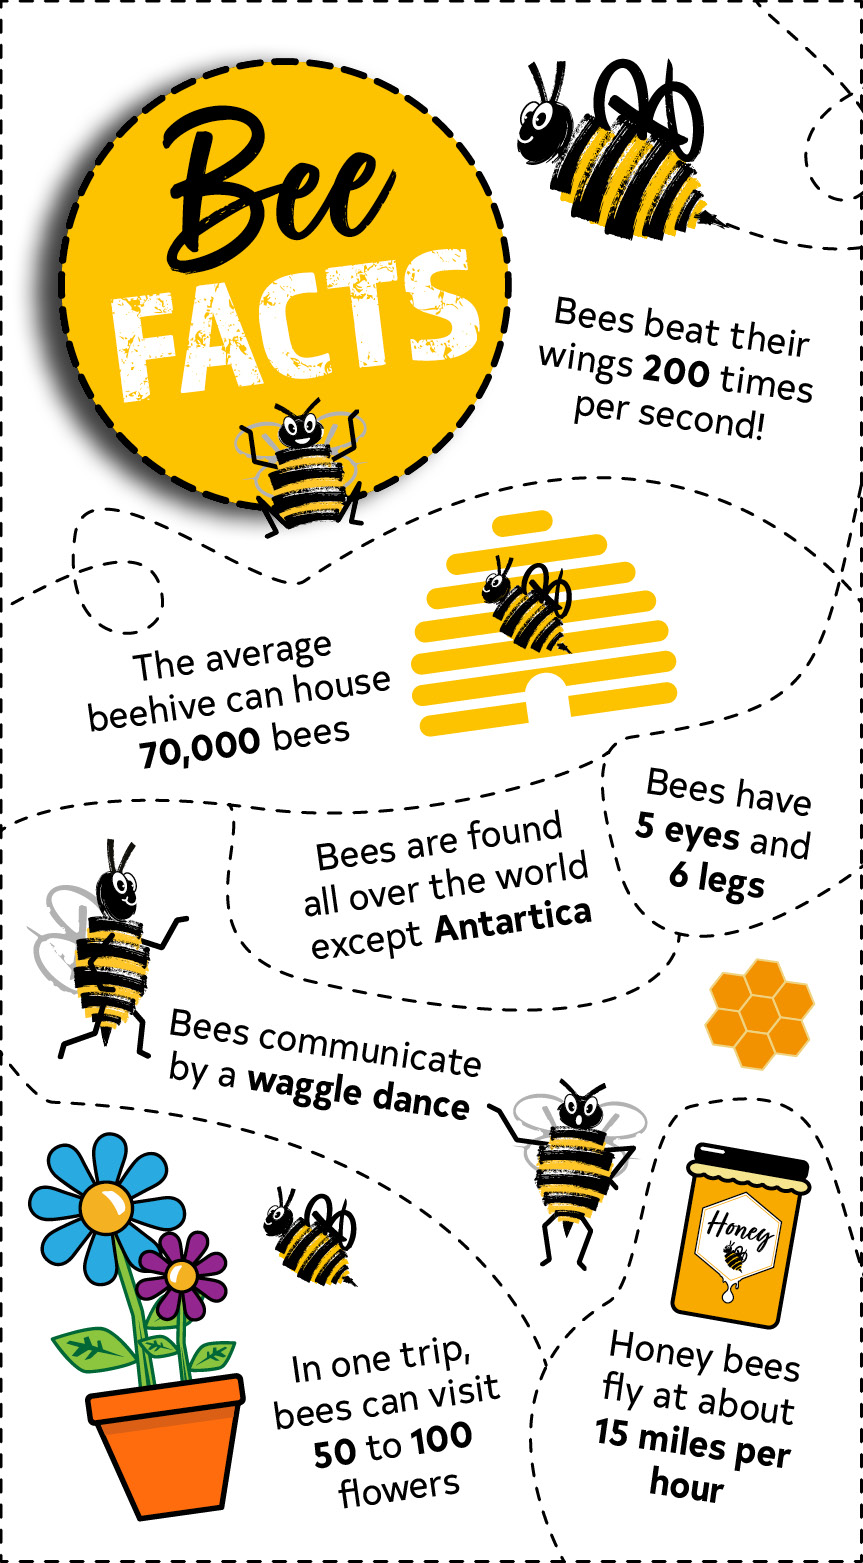 Bee Facts Infographic